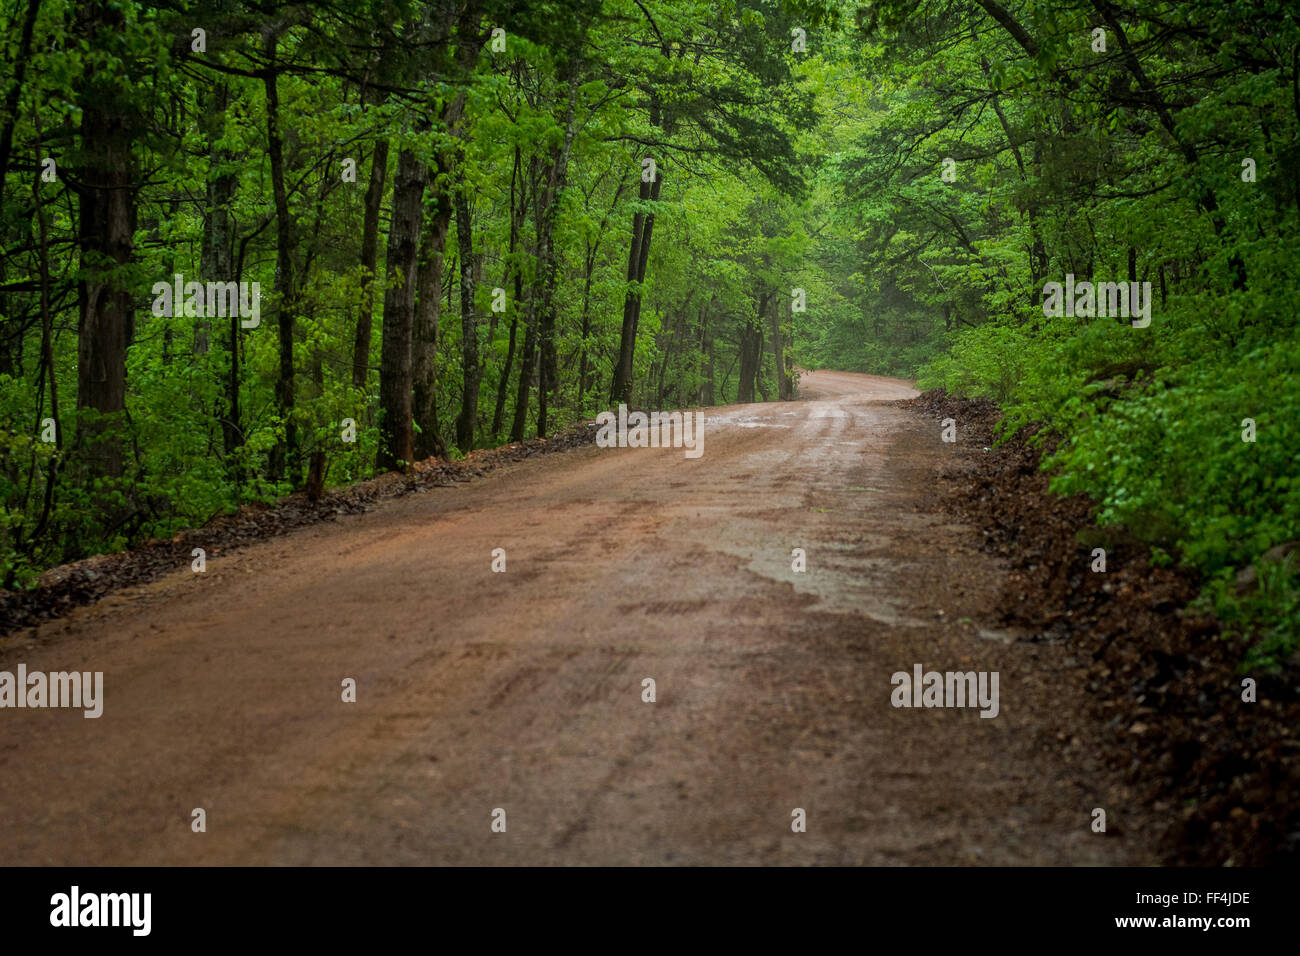 Dirt road winding through a green oak forest - Stock Image